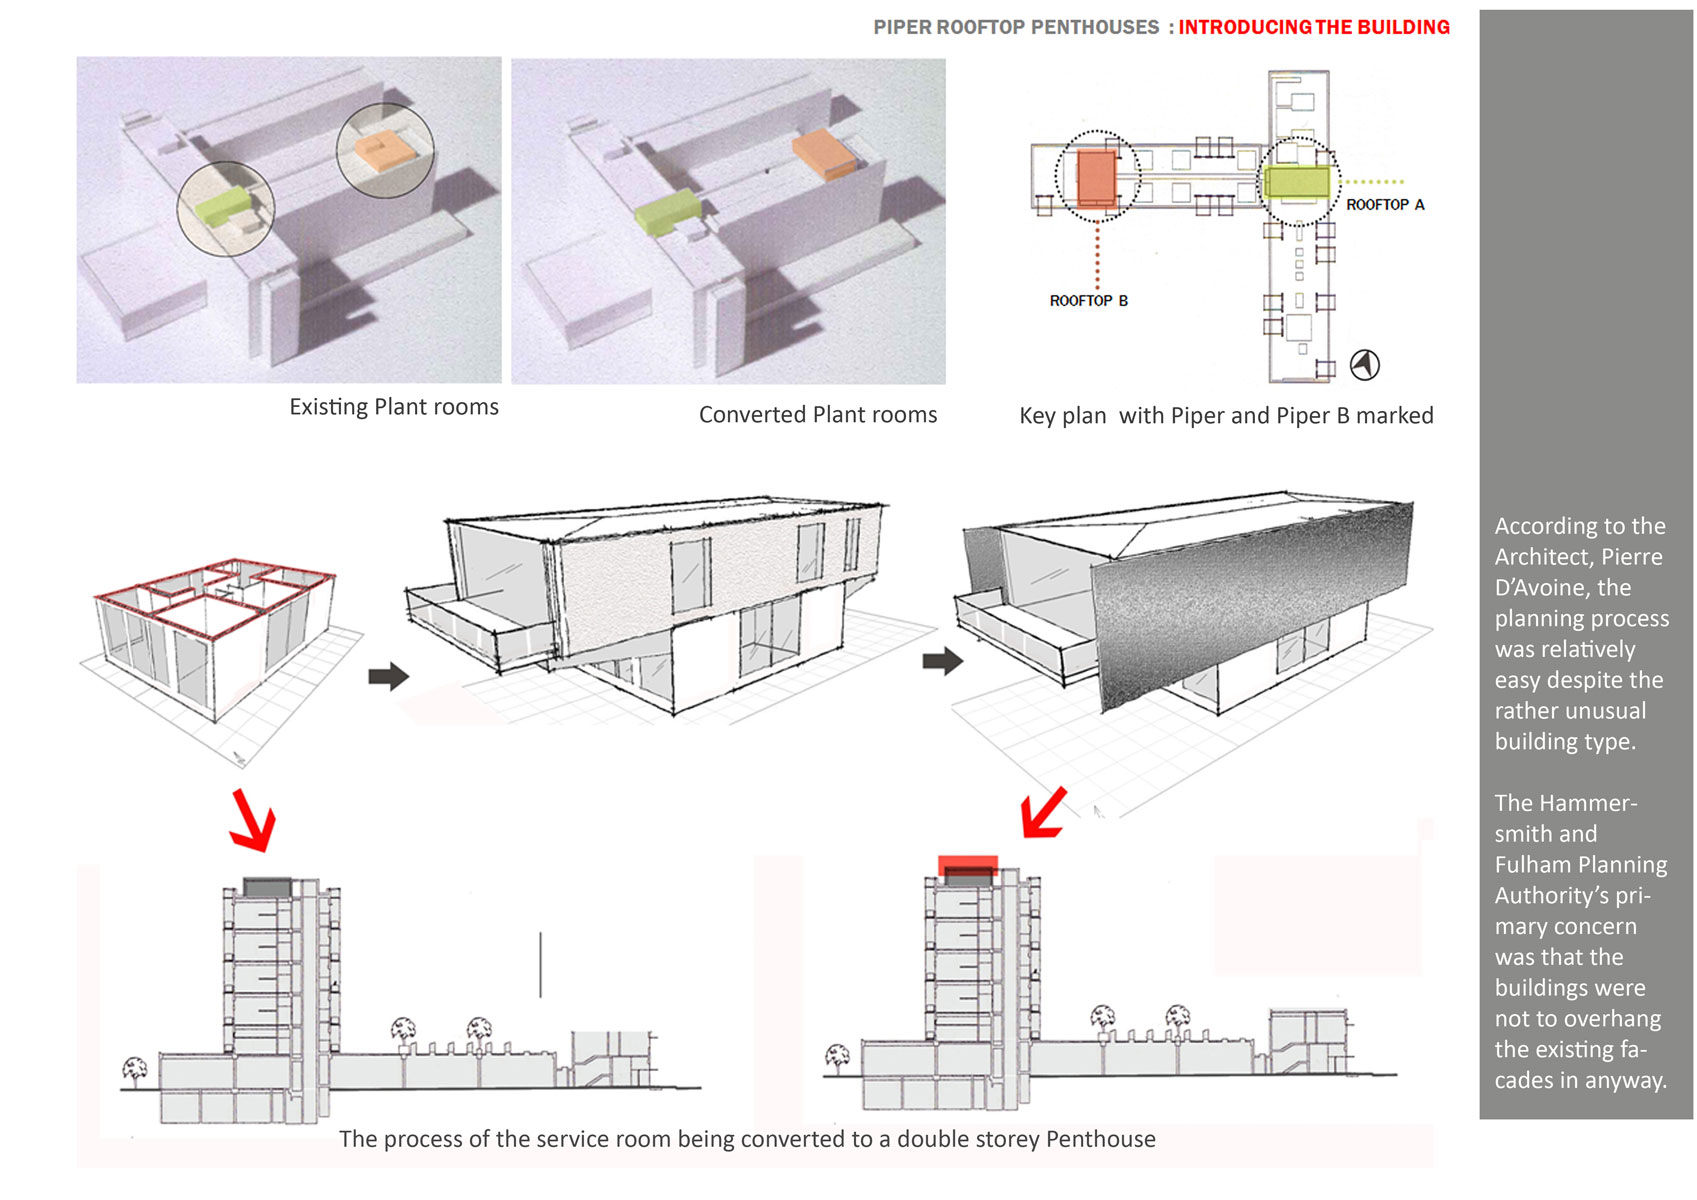 Architectural Sheet Design The Image